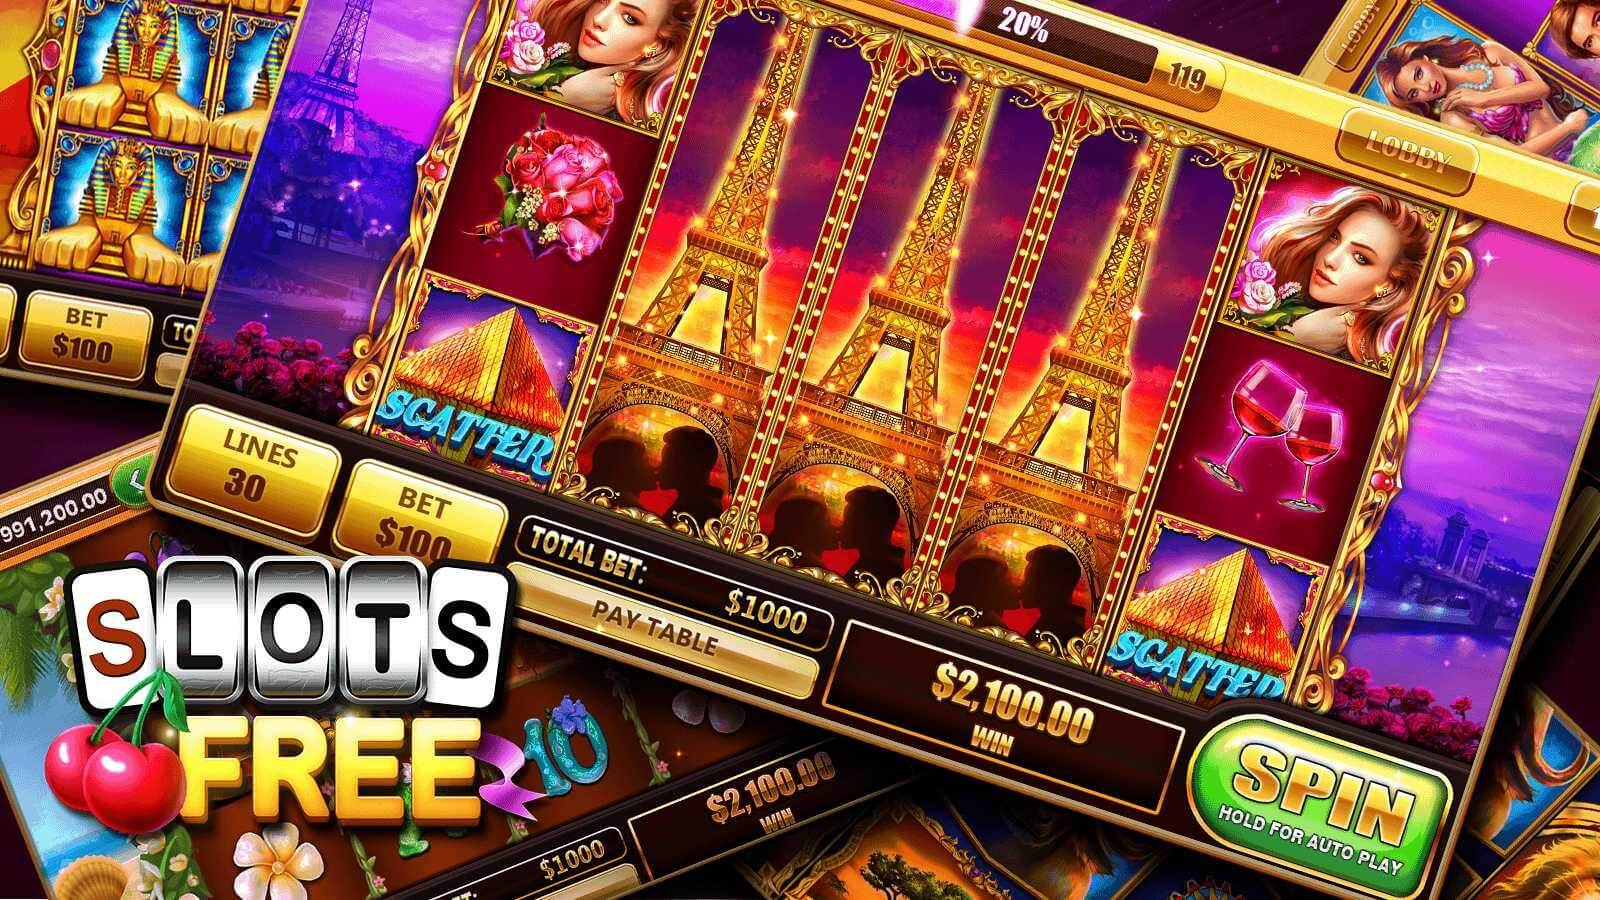 How To Play Free Casino Slots Online